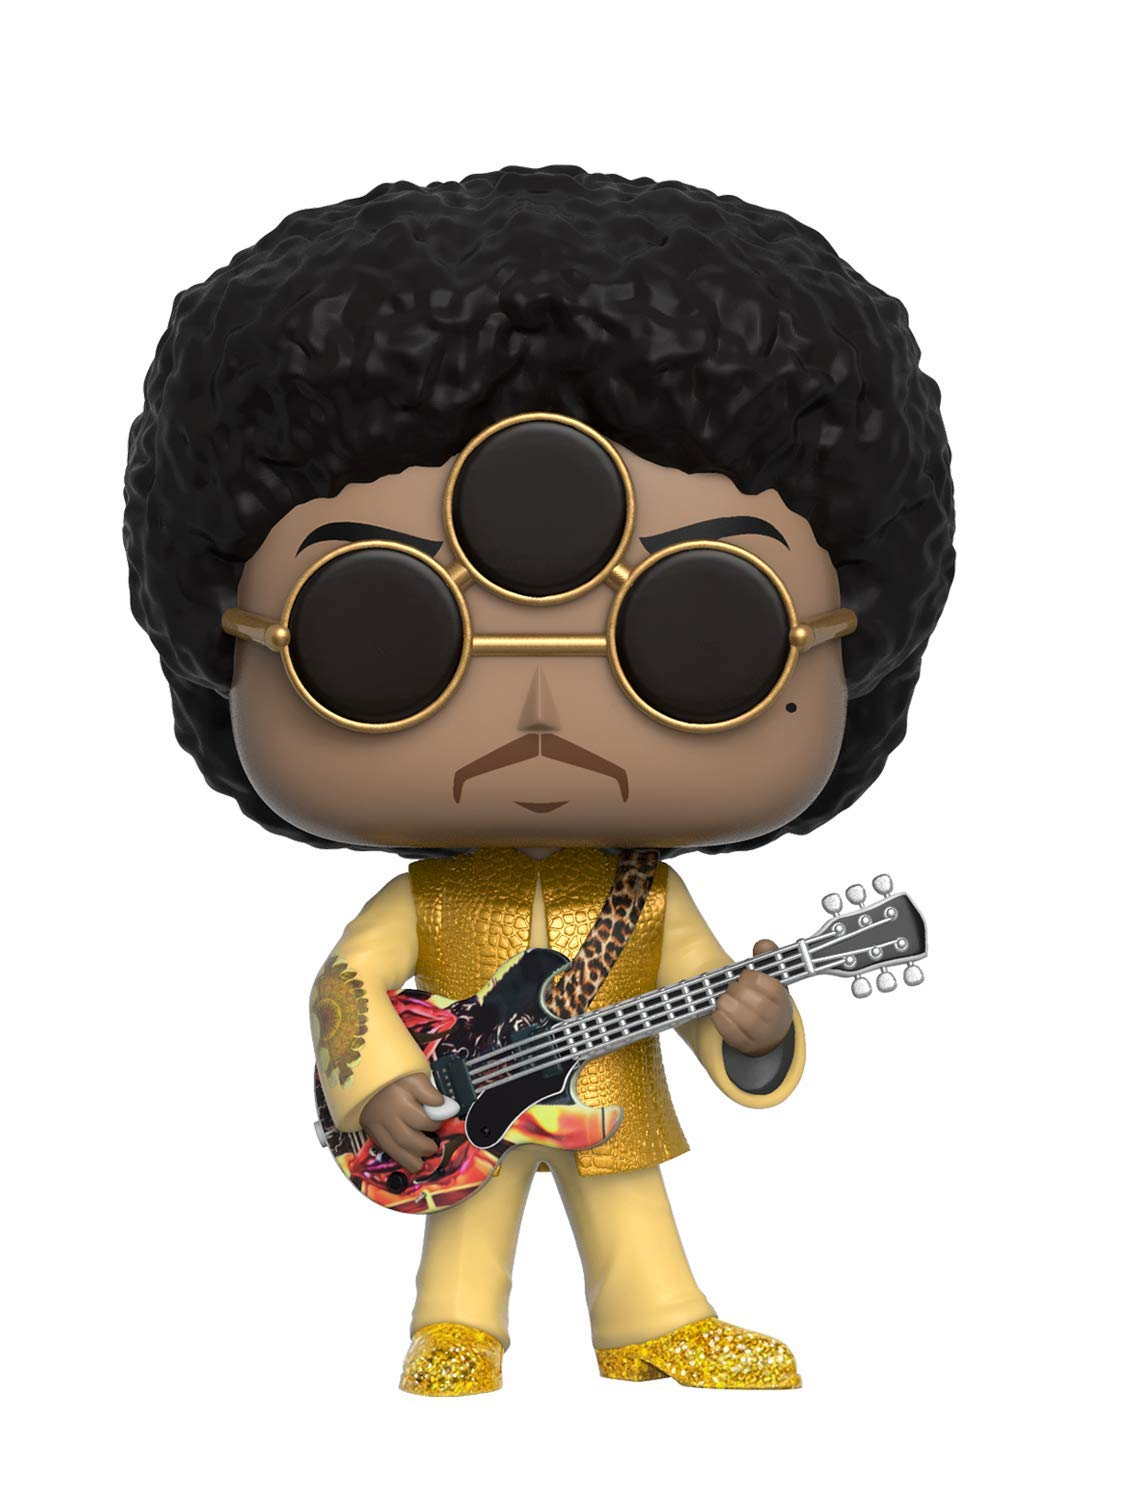 Funko Pop Rocks: Prince - 3rd Eye Girl Collectible Figure, Multicolor